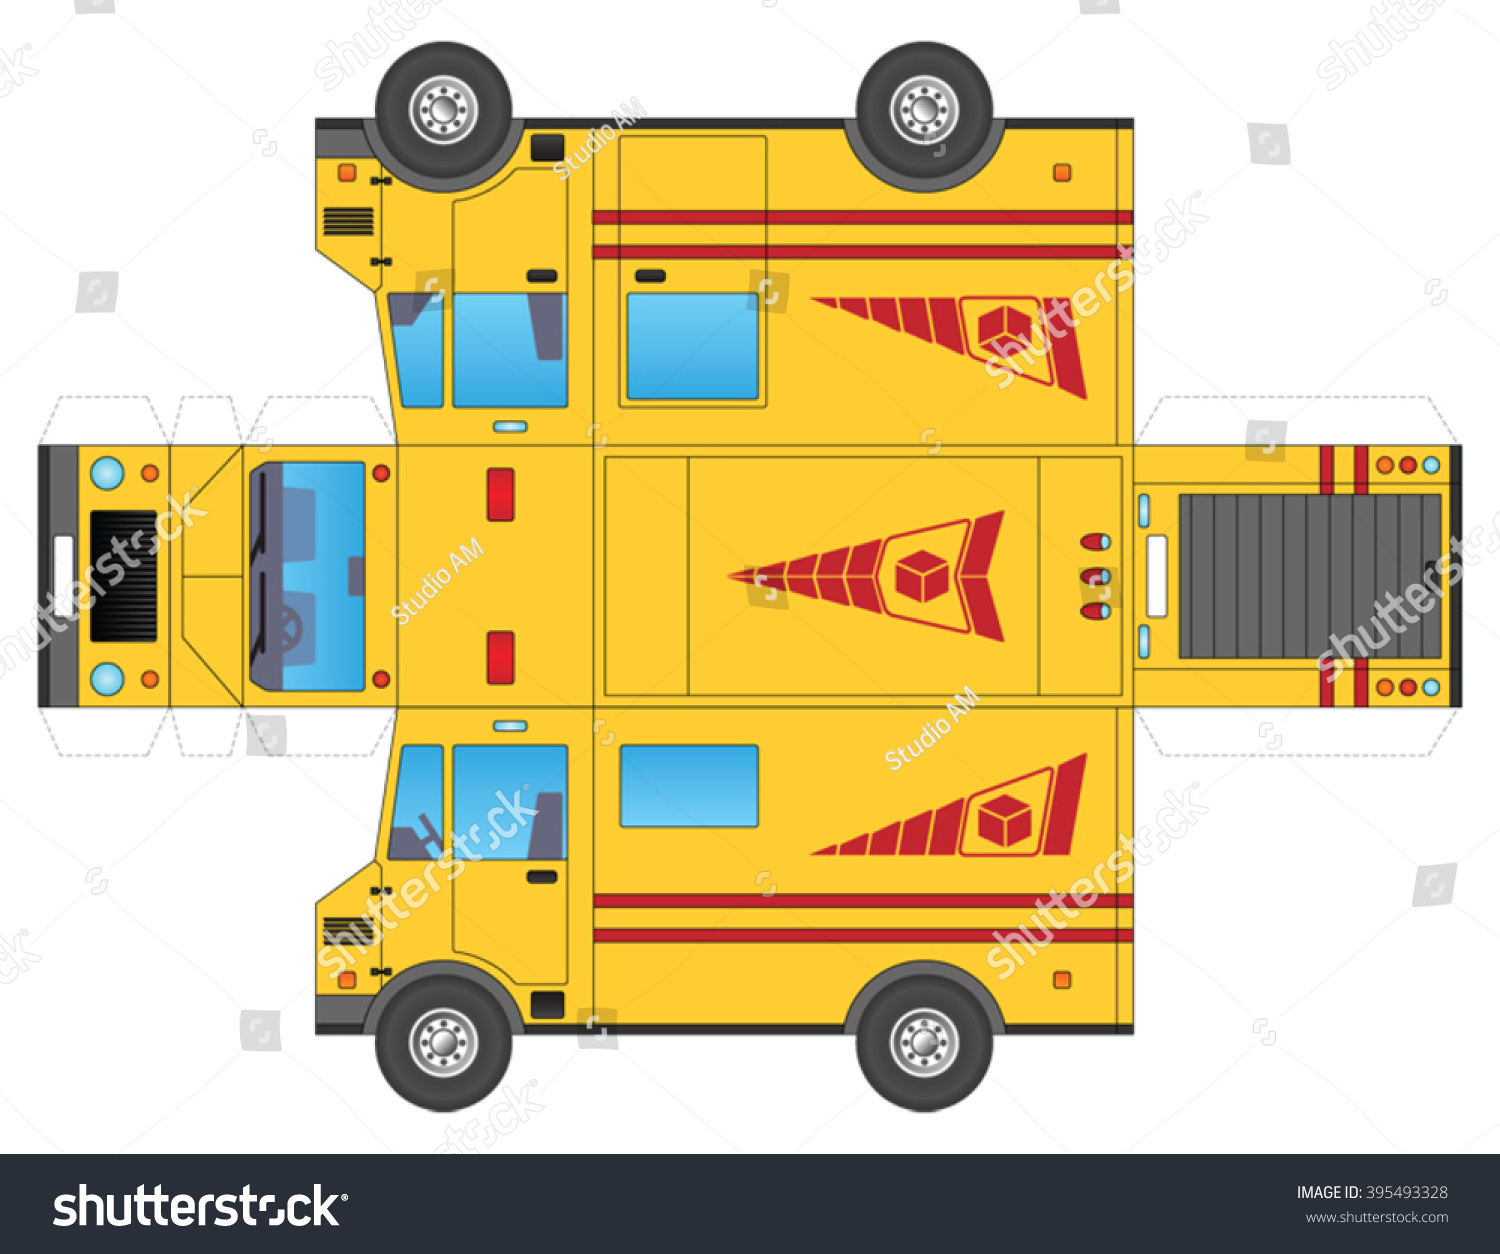 parcel delivery truck template to cut out and glue into a 3d model stock vector illustration. Black Bedroom Furniture Sets. Home Design Ideas